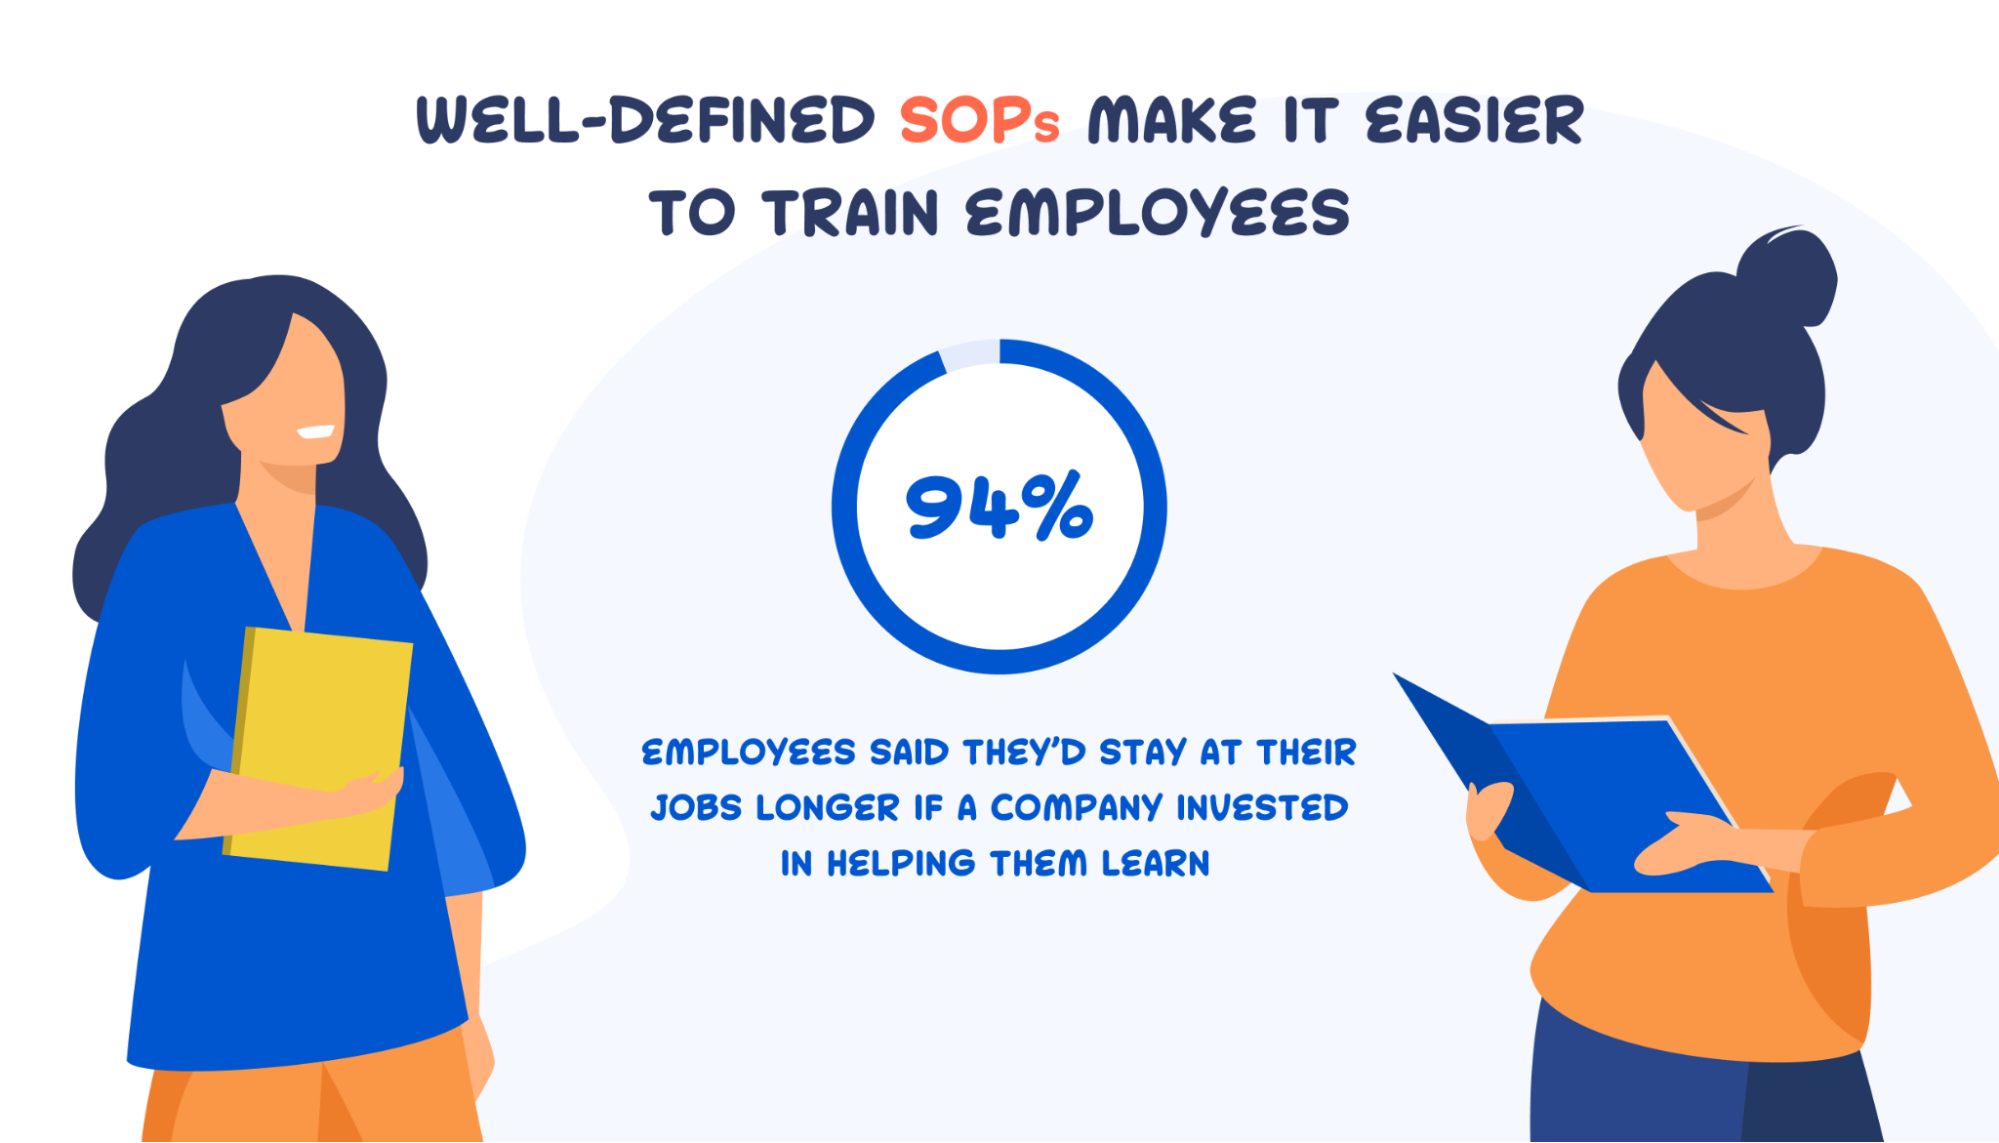 94% of employees say they would stay longer if their company invested in their learning